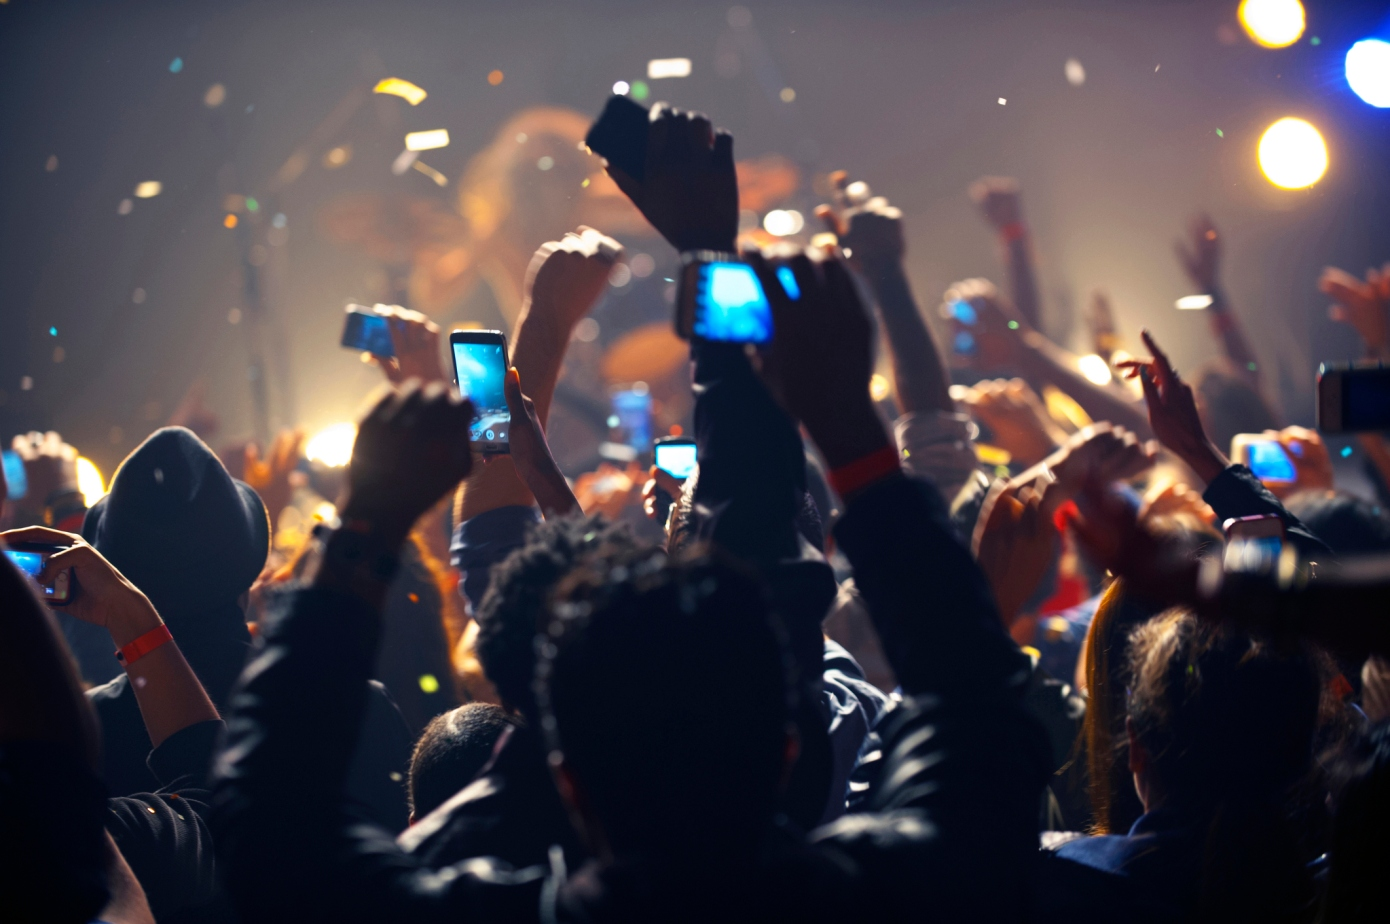 Fans hold up their phones during a concert